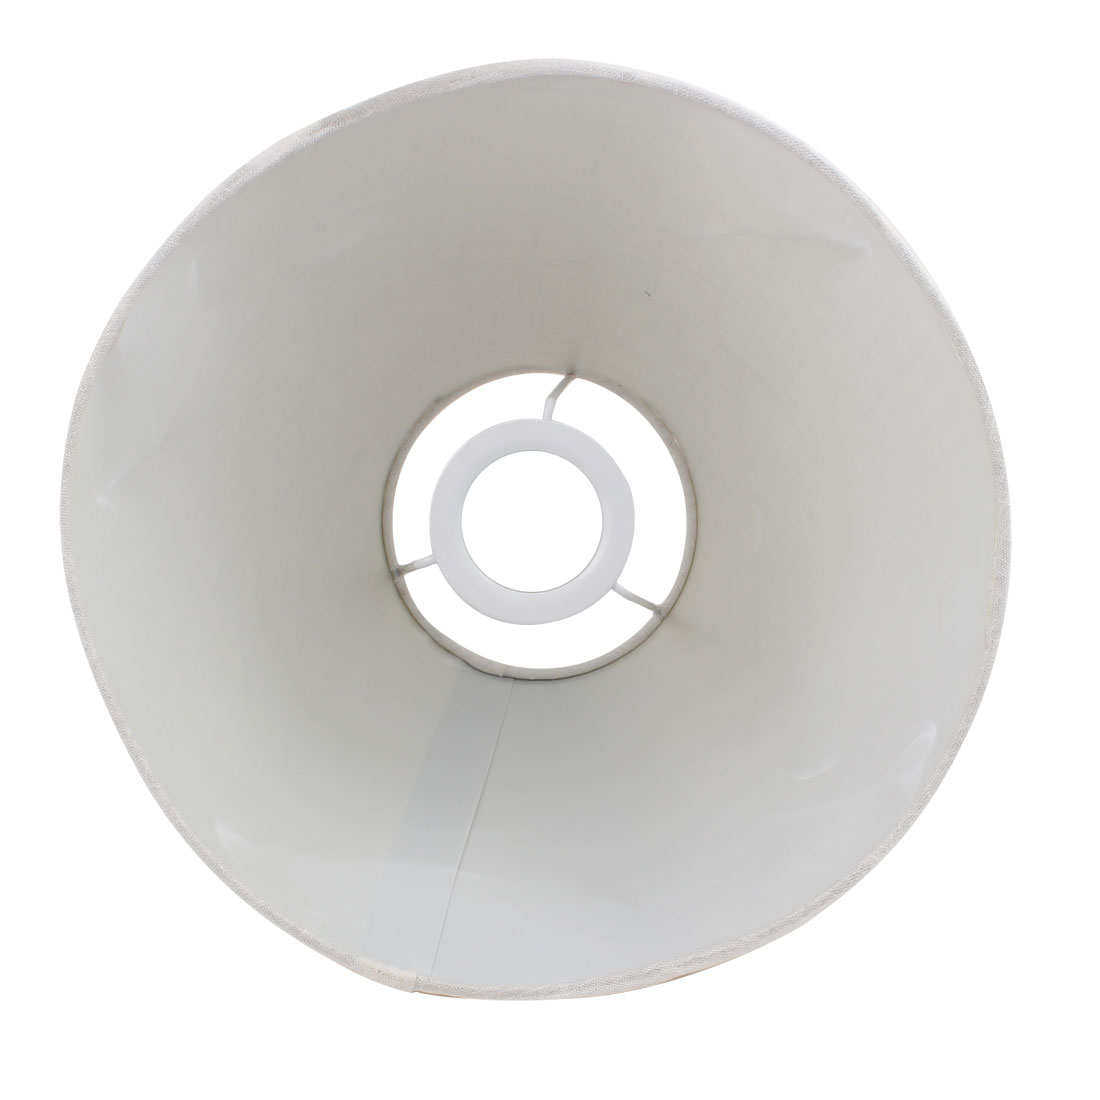 110mm x 260mm x 180mm Creamy-white Fabric Shell Lamp Shade for Reading Lamp - image 1 of 2